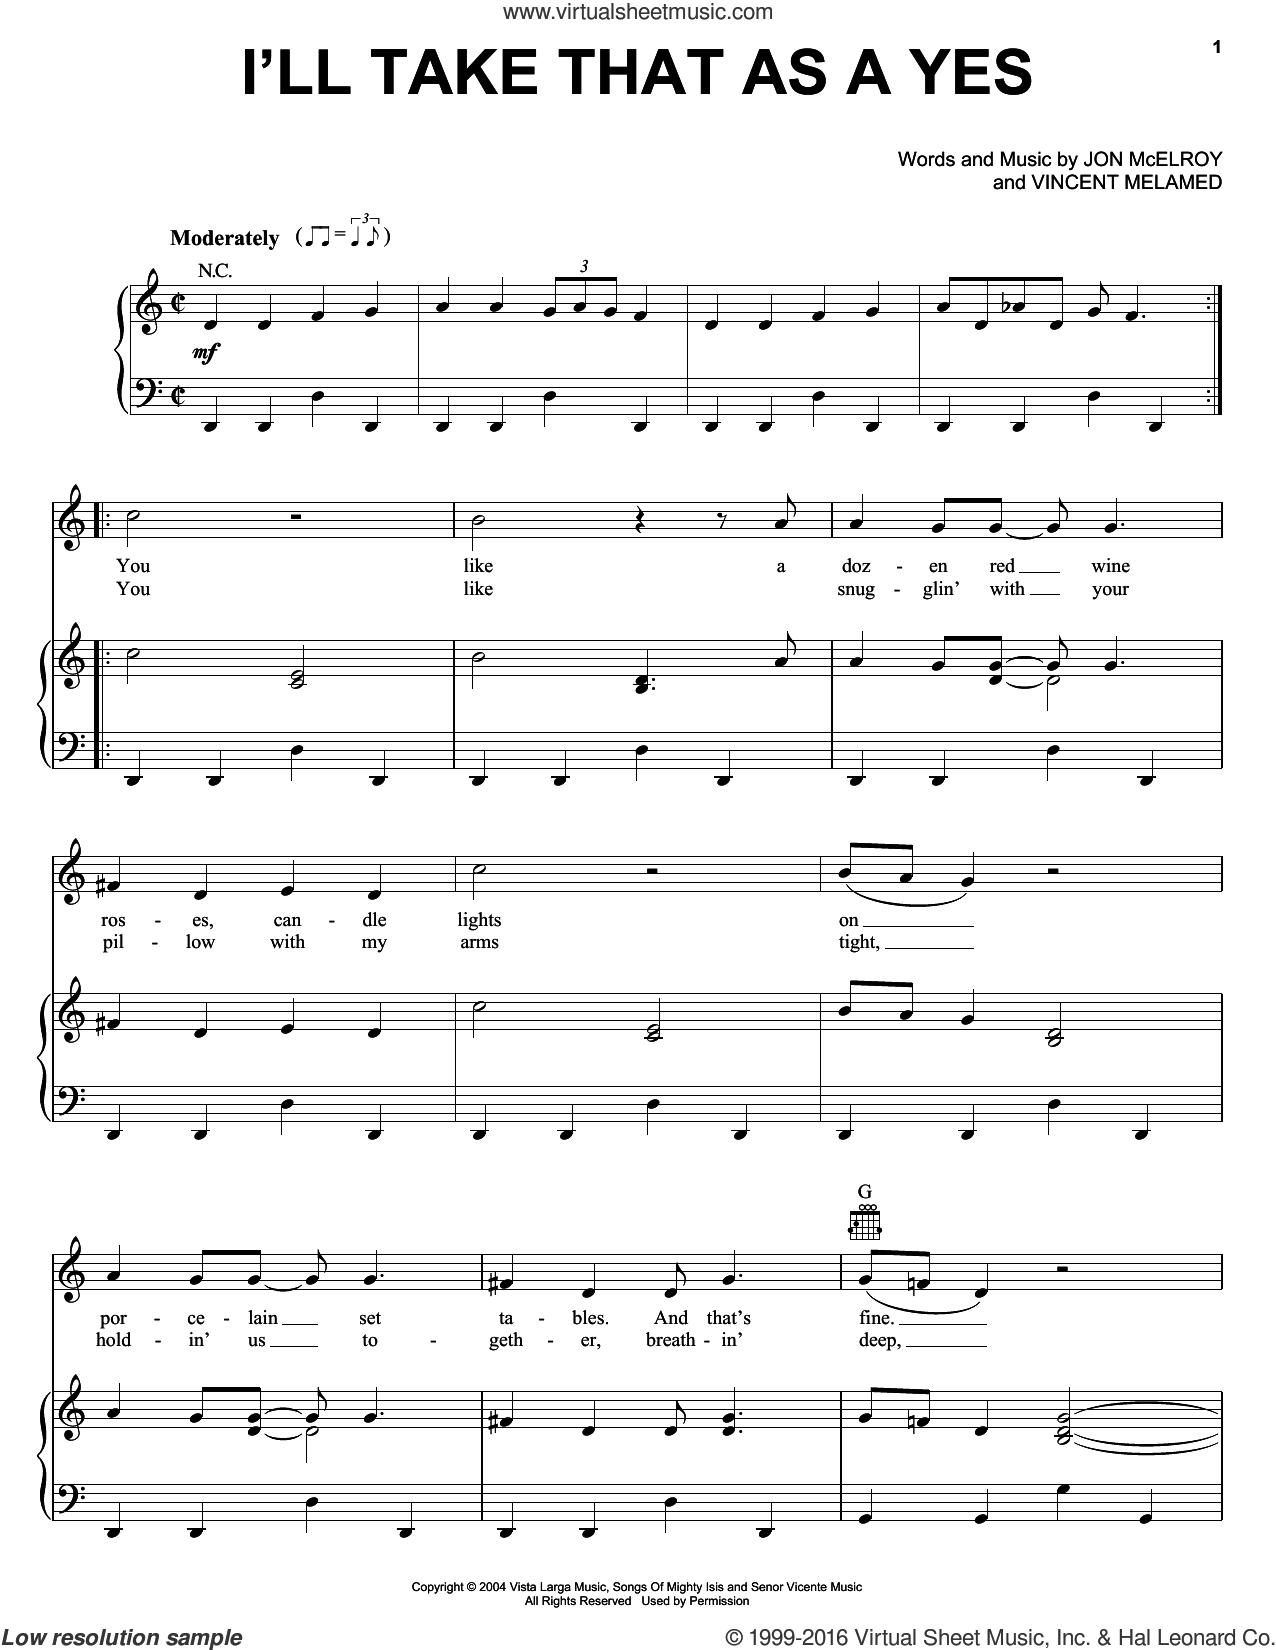 I'll Take That As A Yes sheet music for voice, piano or guitar by Phil Vassar, Jon McElroy and Vincent Melamed, intermediate skill level